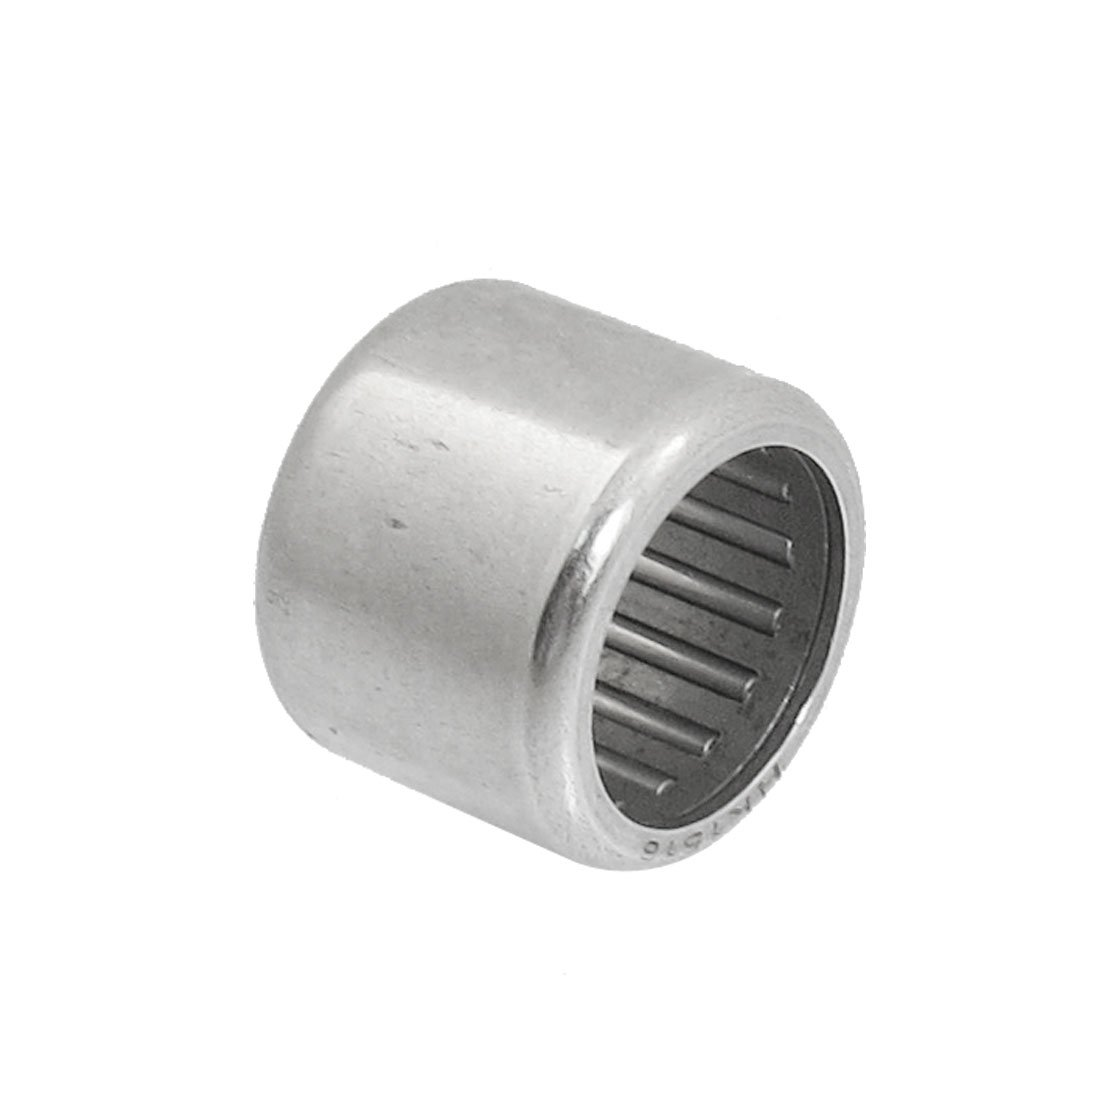 sourcingmap HK152016 15 x 20 x 16mm Caged Drawn Cup Needle Roller Bearing Amico a12102200ux0359